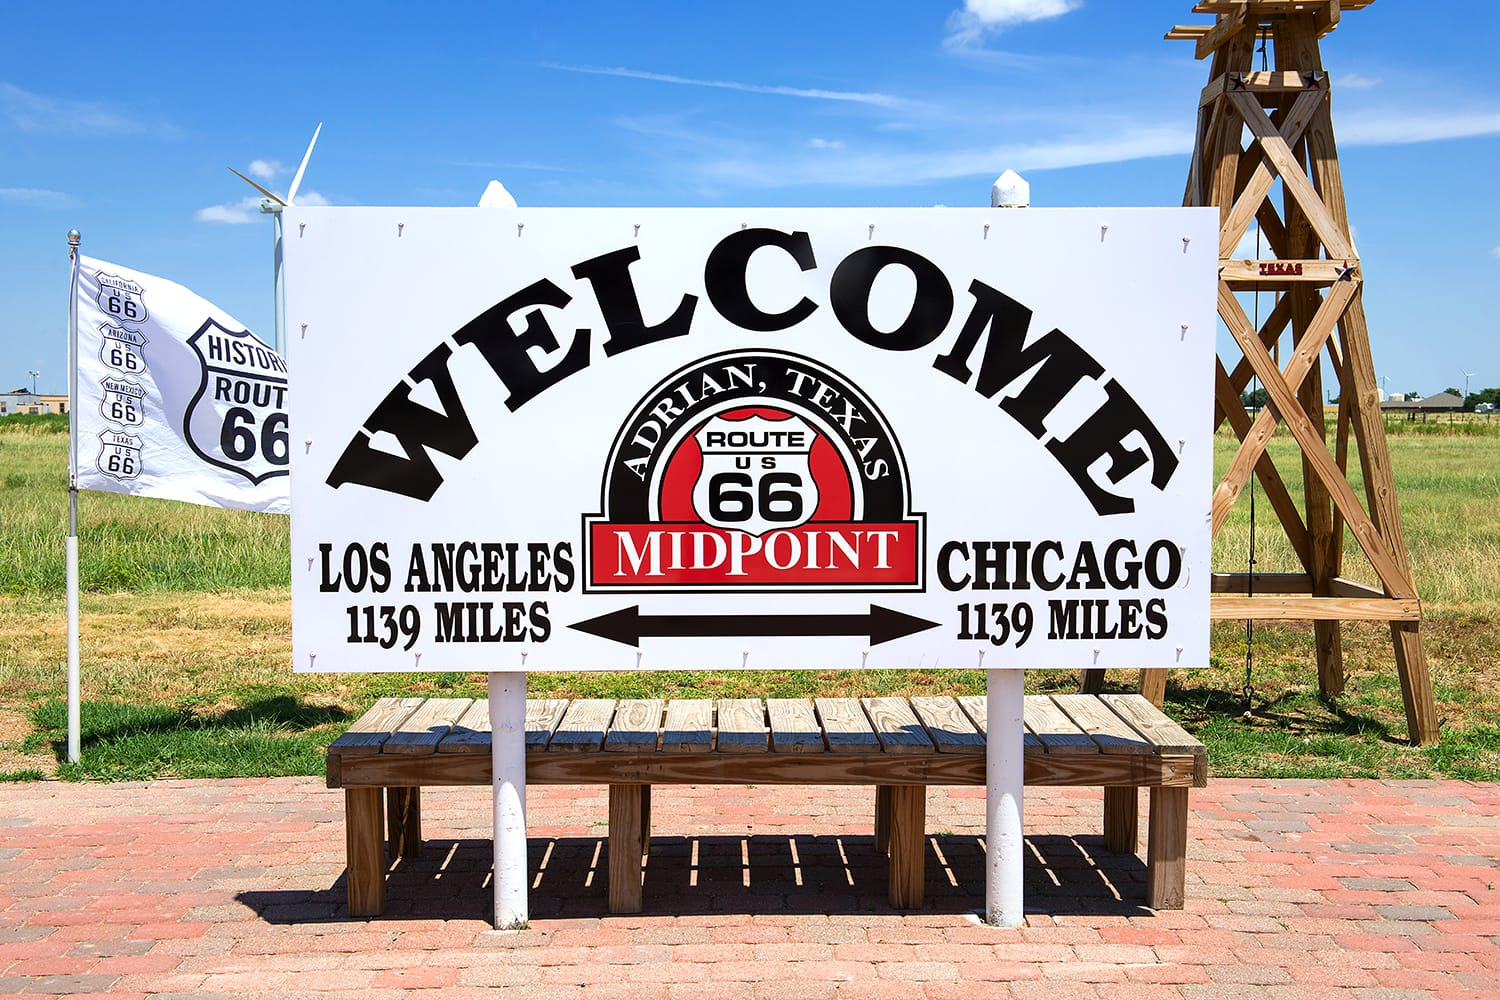 Midpoint of Route 66 exactly 1139 Miles away from either Chicago as well as Los Angeles.